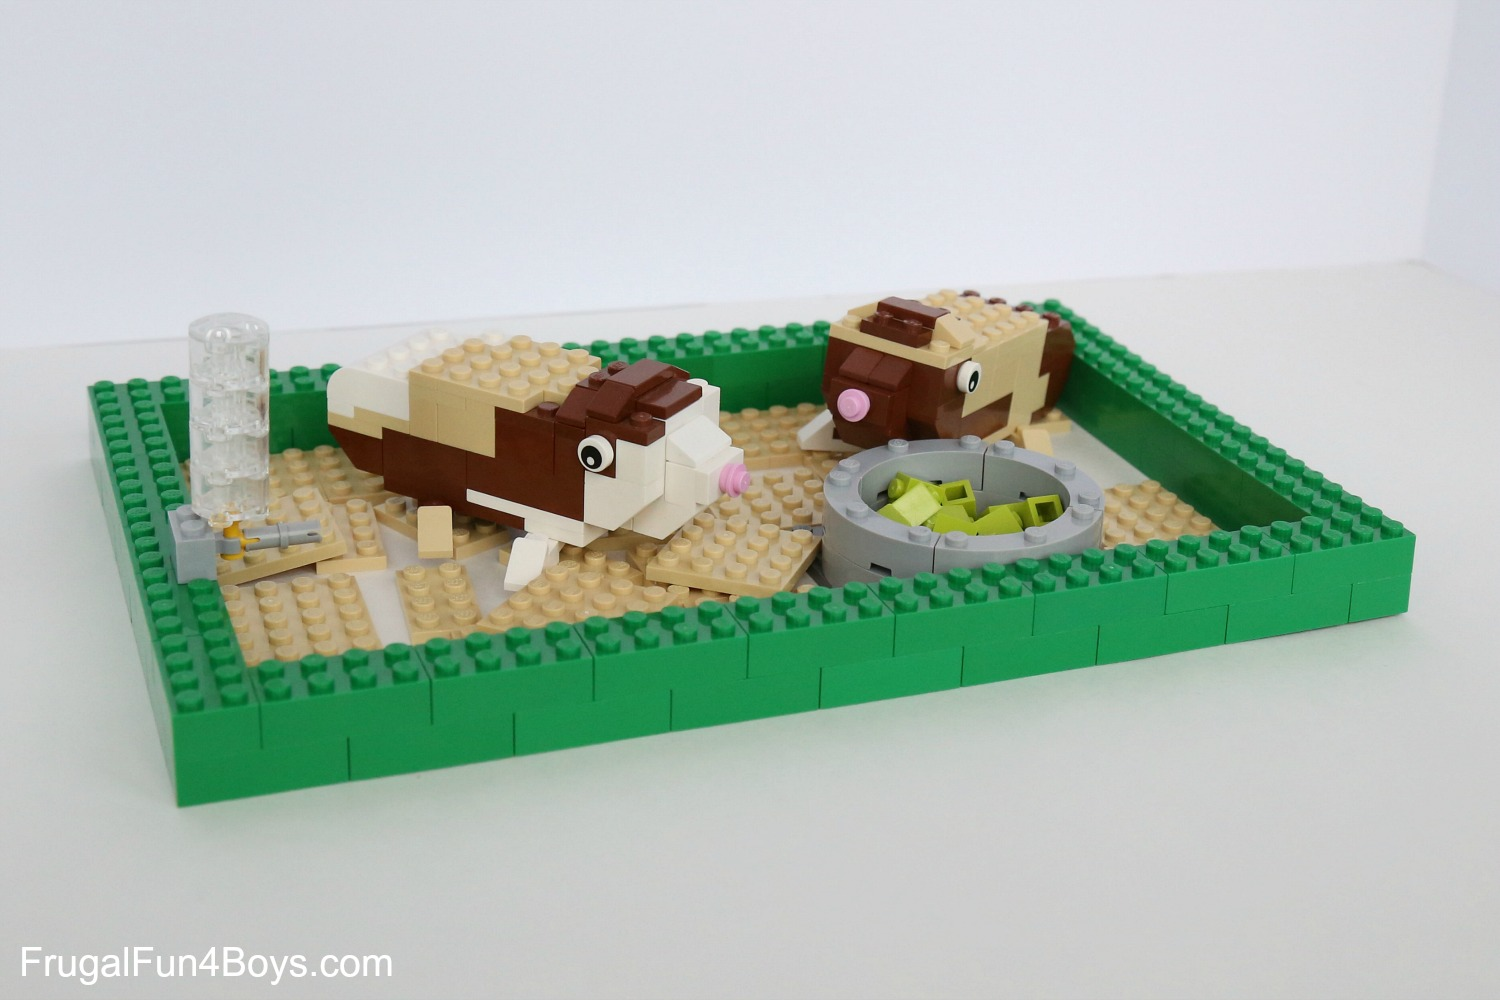 LEGO Pets! Building Instructions for Dogs, Cats, Guinea Pigs, Fish, and More!